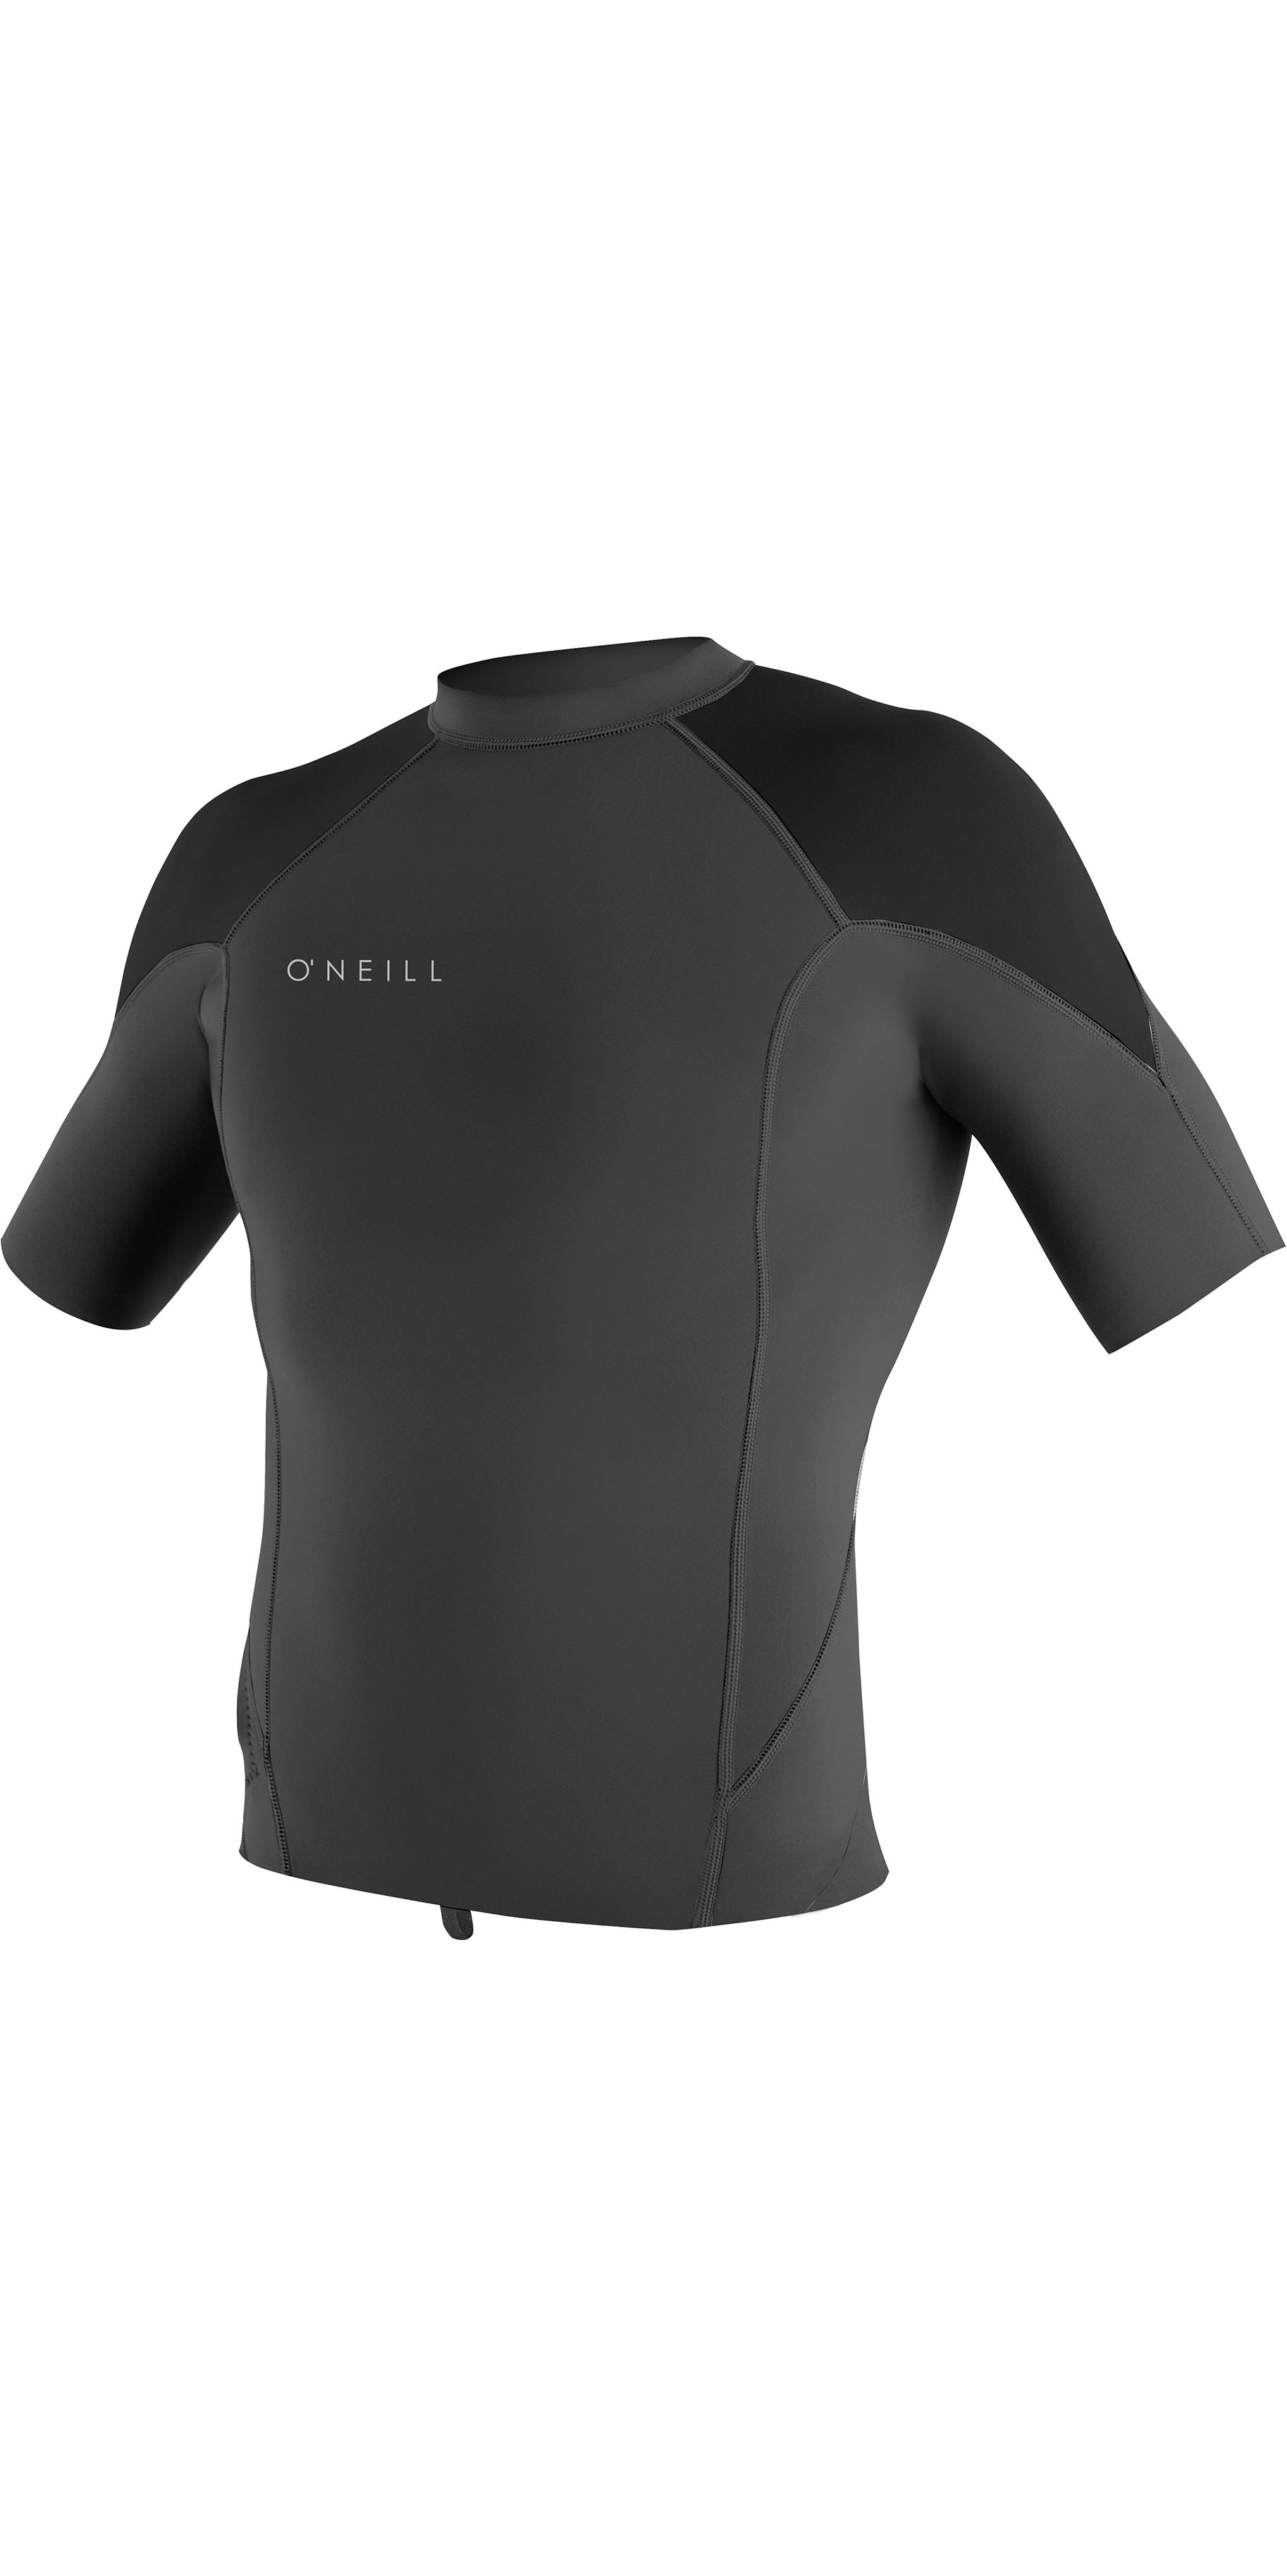 2019 O'Neill Mens Reactor II 1mm Neoprene Short Sleeve Top Graphite / Black / Cool Grey 5081